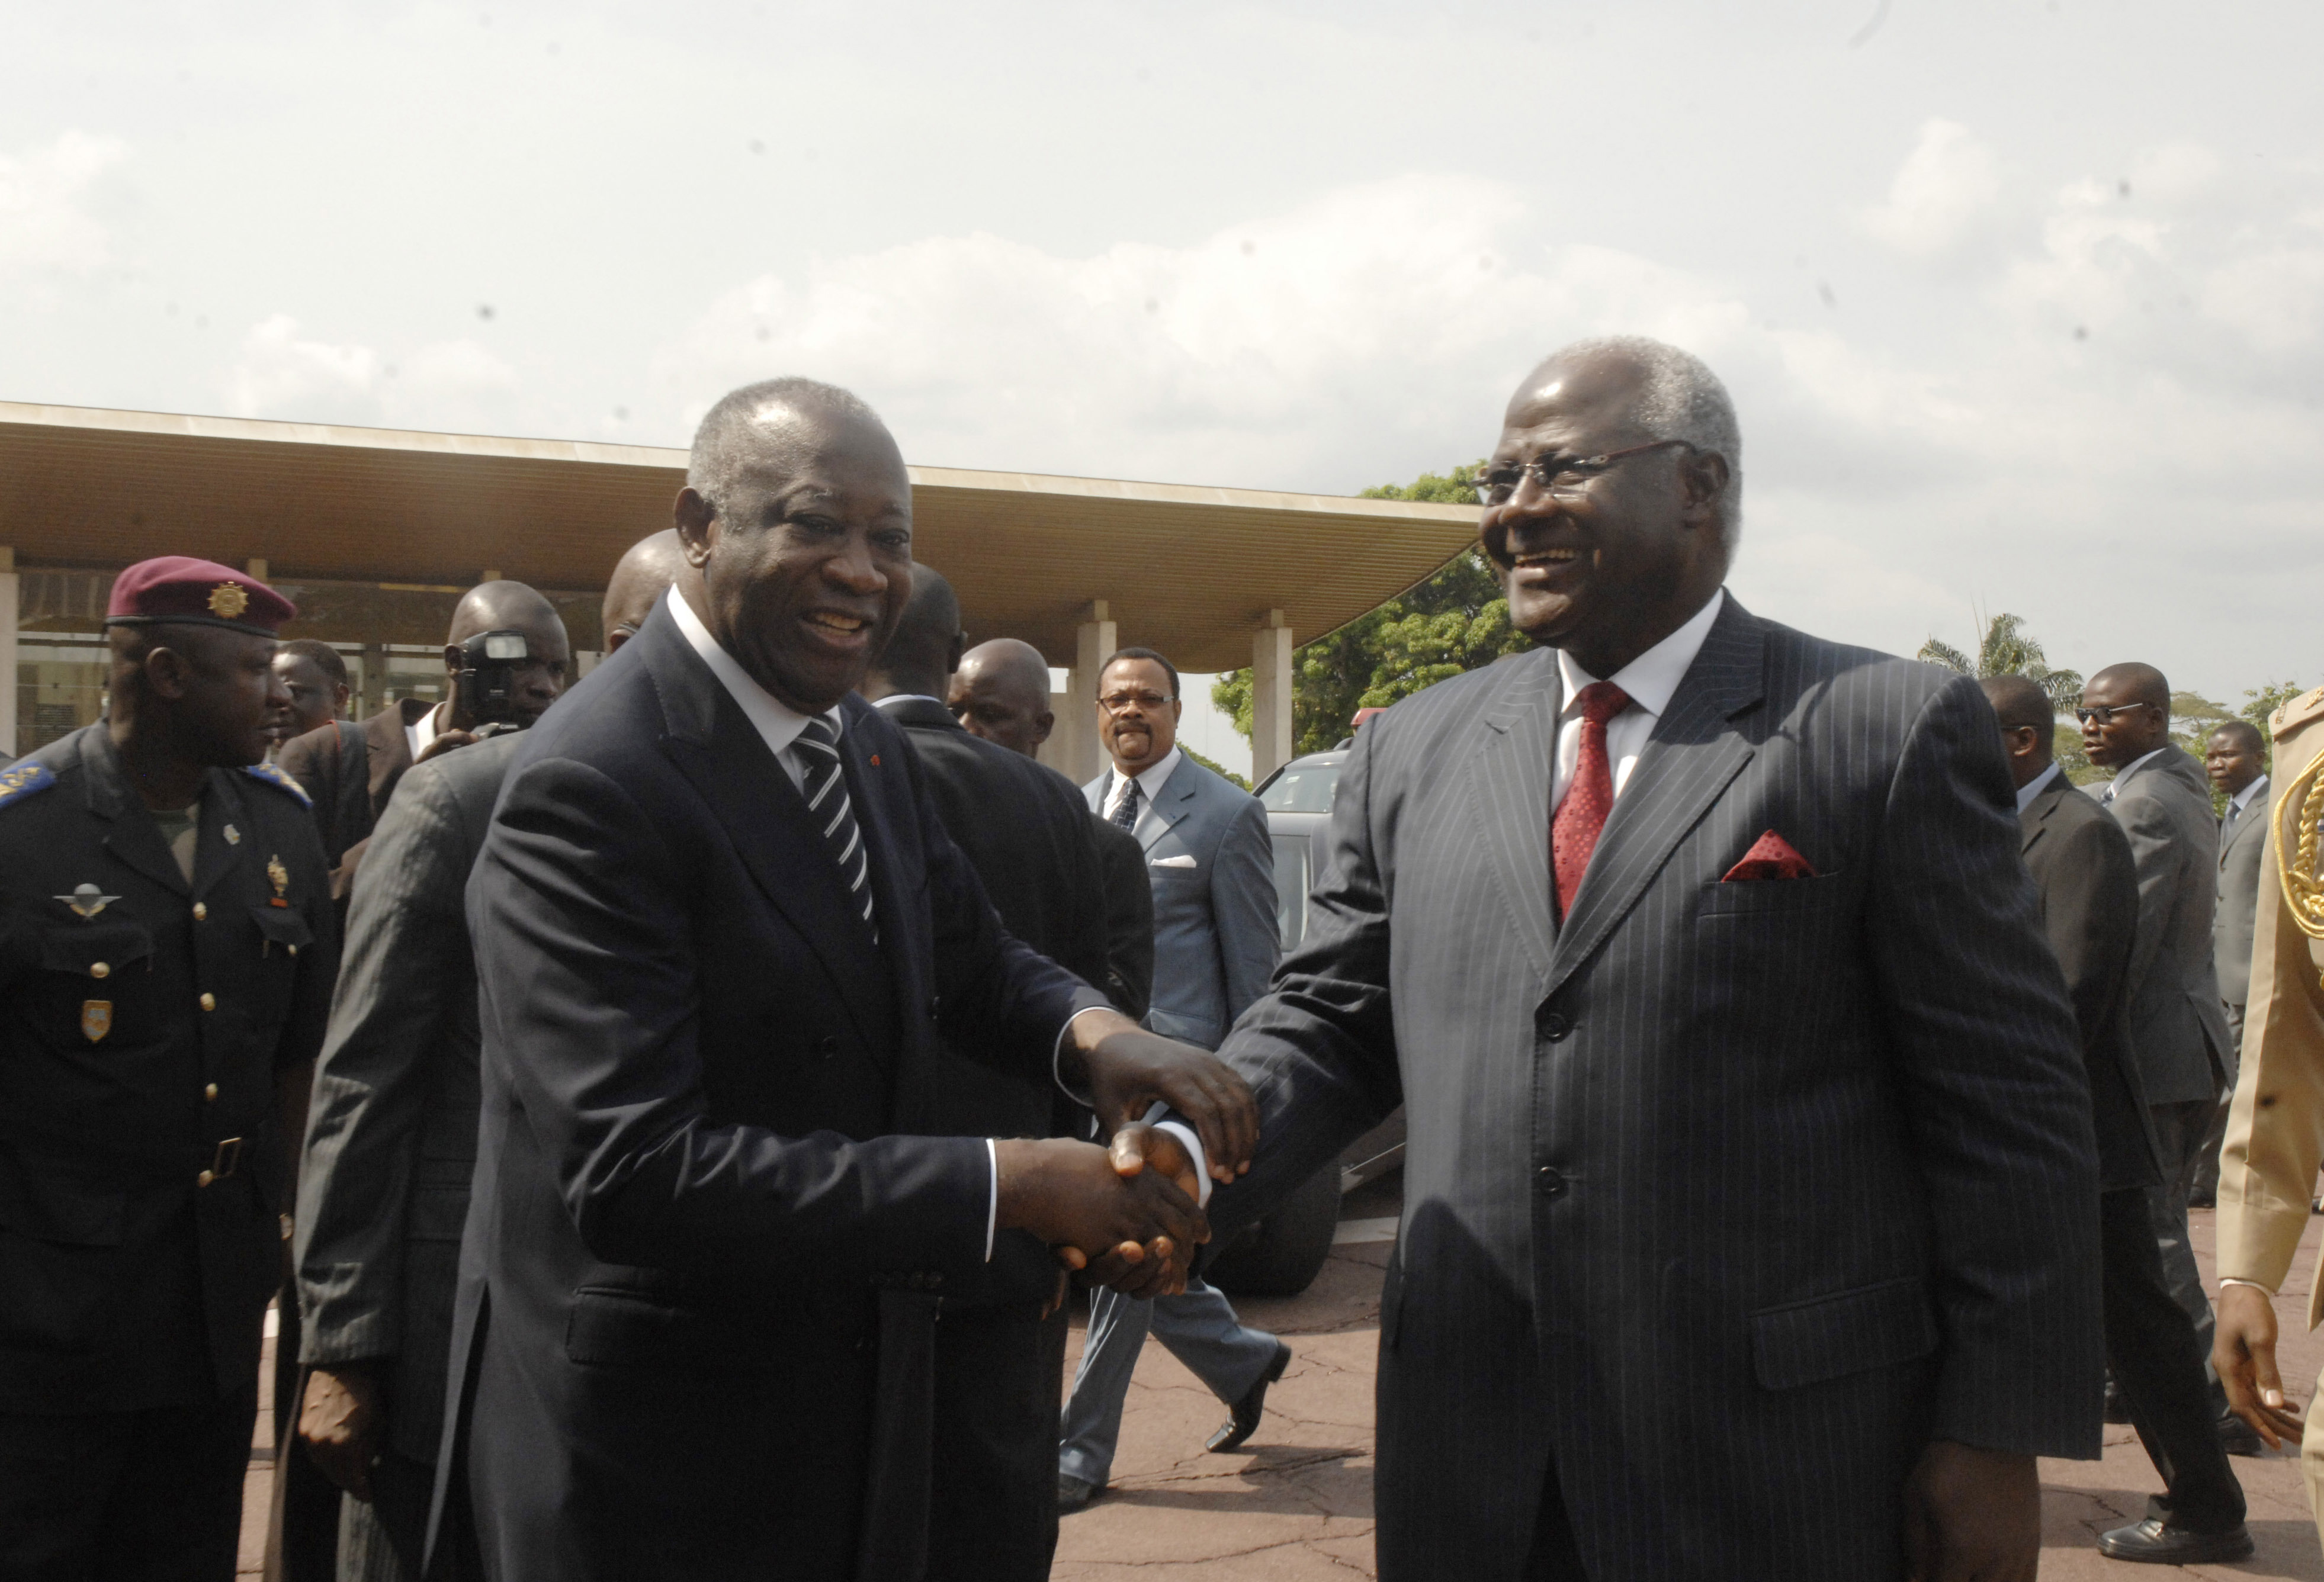 Ivory Coast incumbent president Laurent Gbagbo welcomes Sierra Leone President Ernest Bai Koroma, at the Presidential Palace in Abidjan, Ivory Coast, Tuesday, Dec. 28, 2010